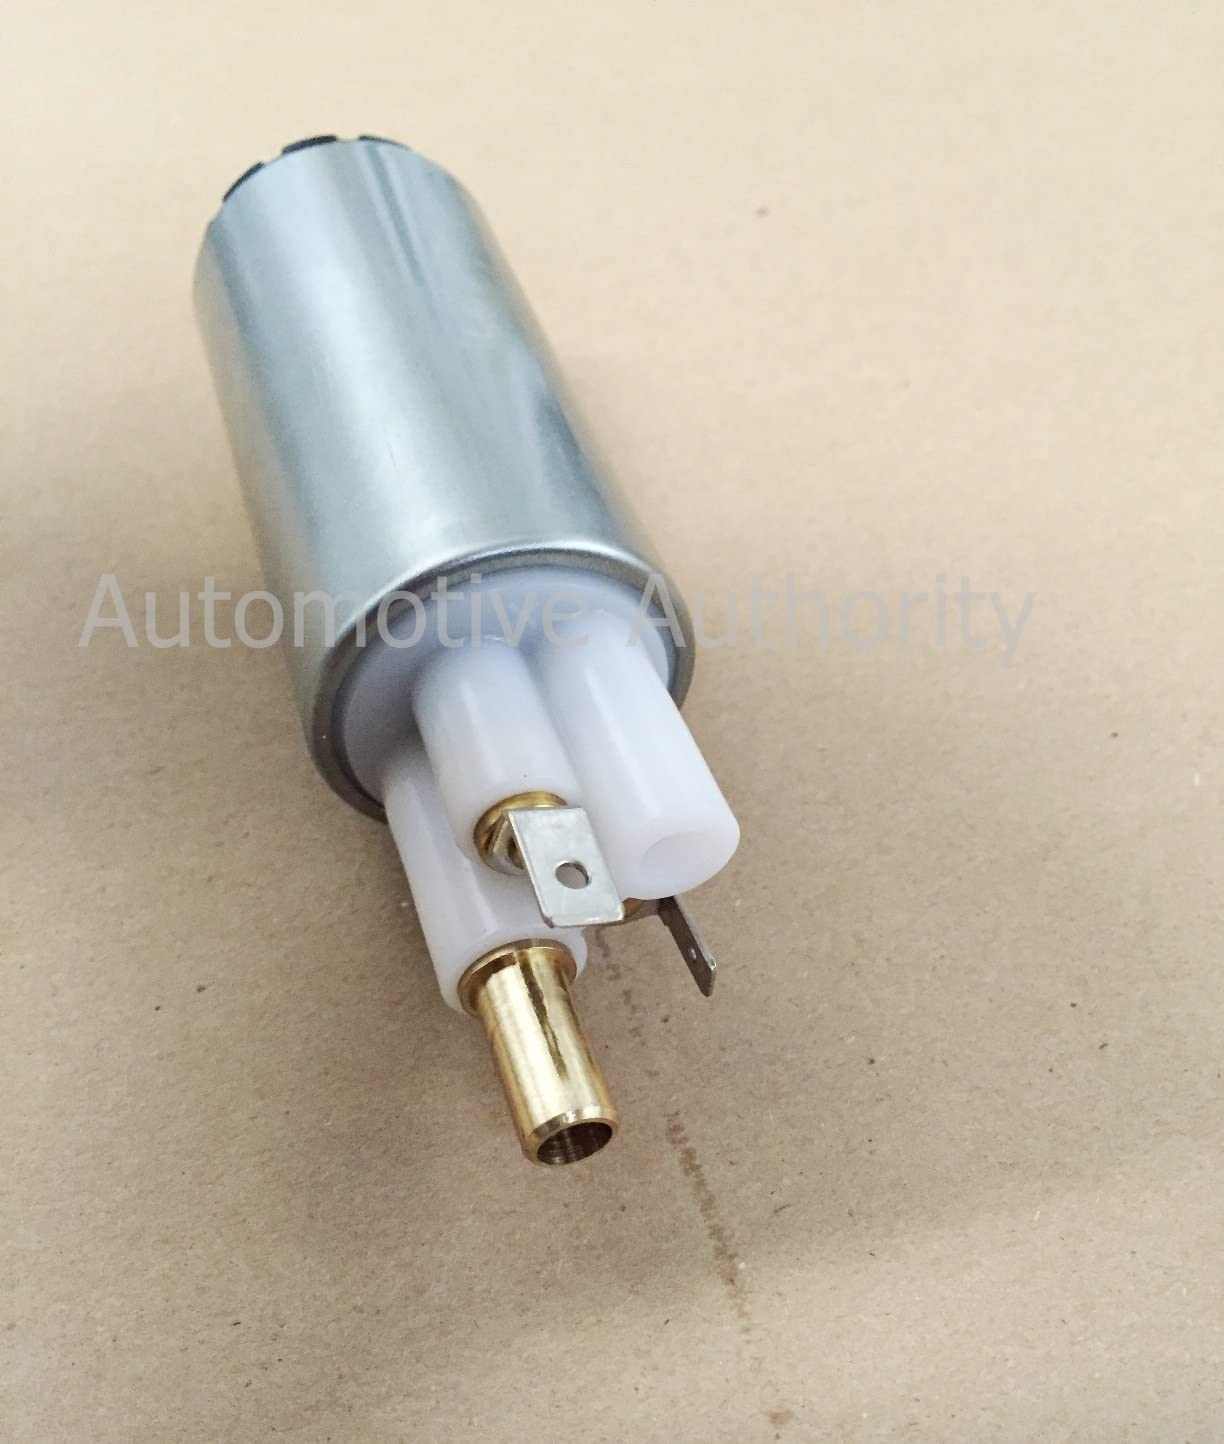 Automotive Authority Mercury/Mariner Fuel Pump 883202T02 / 883202A0, 30-60 HP, EFI 4 Strokes Outboard/Fits: Mercury/Mariner Outboard Motors 2002-2006